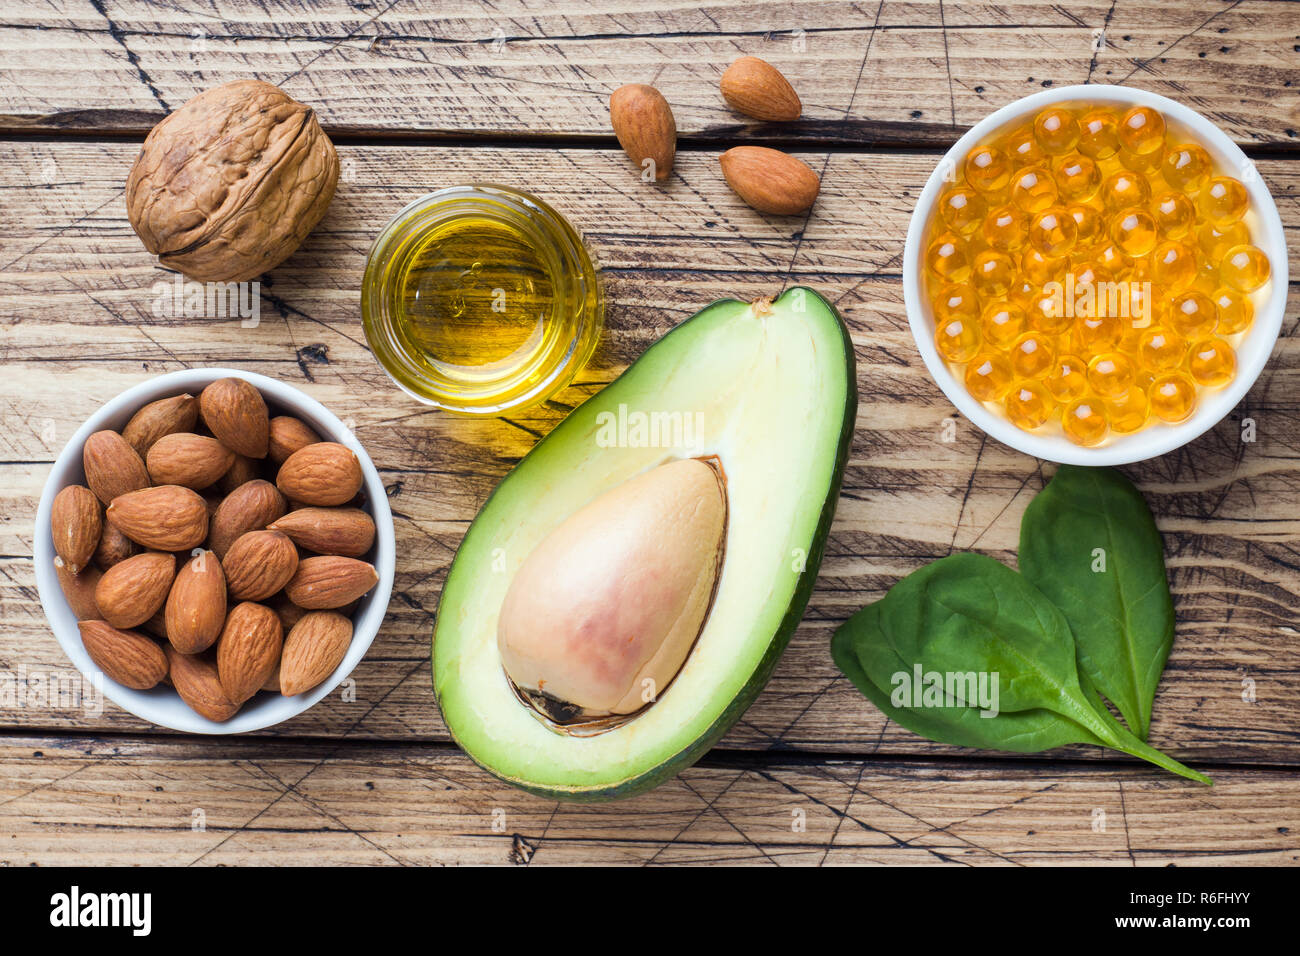 Concept Healthy food antioxidant products avocado, nuts and fish oil, grapefruit on wooden background - Stock Image